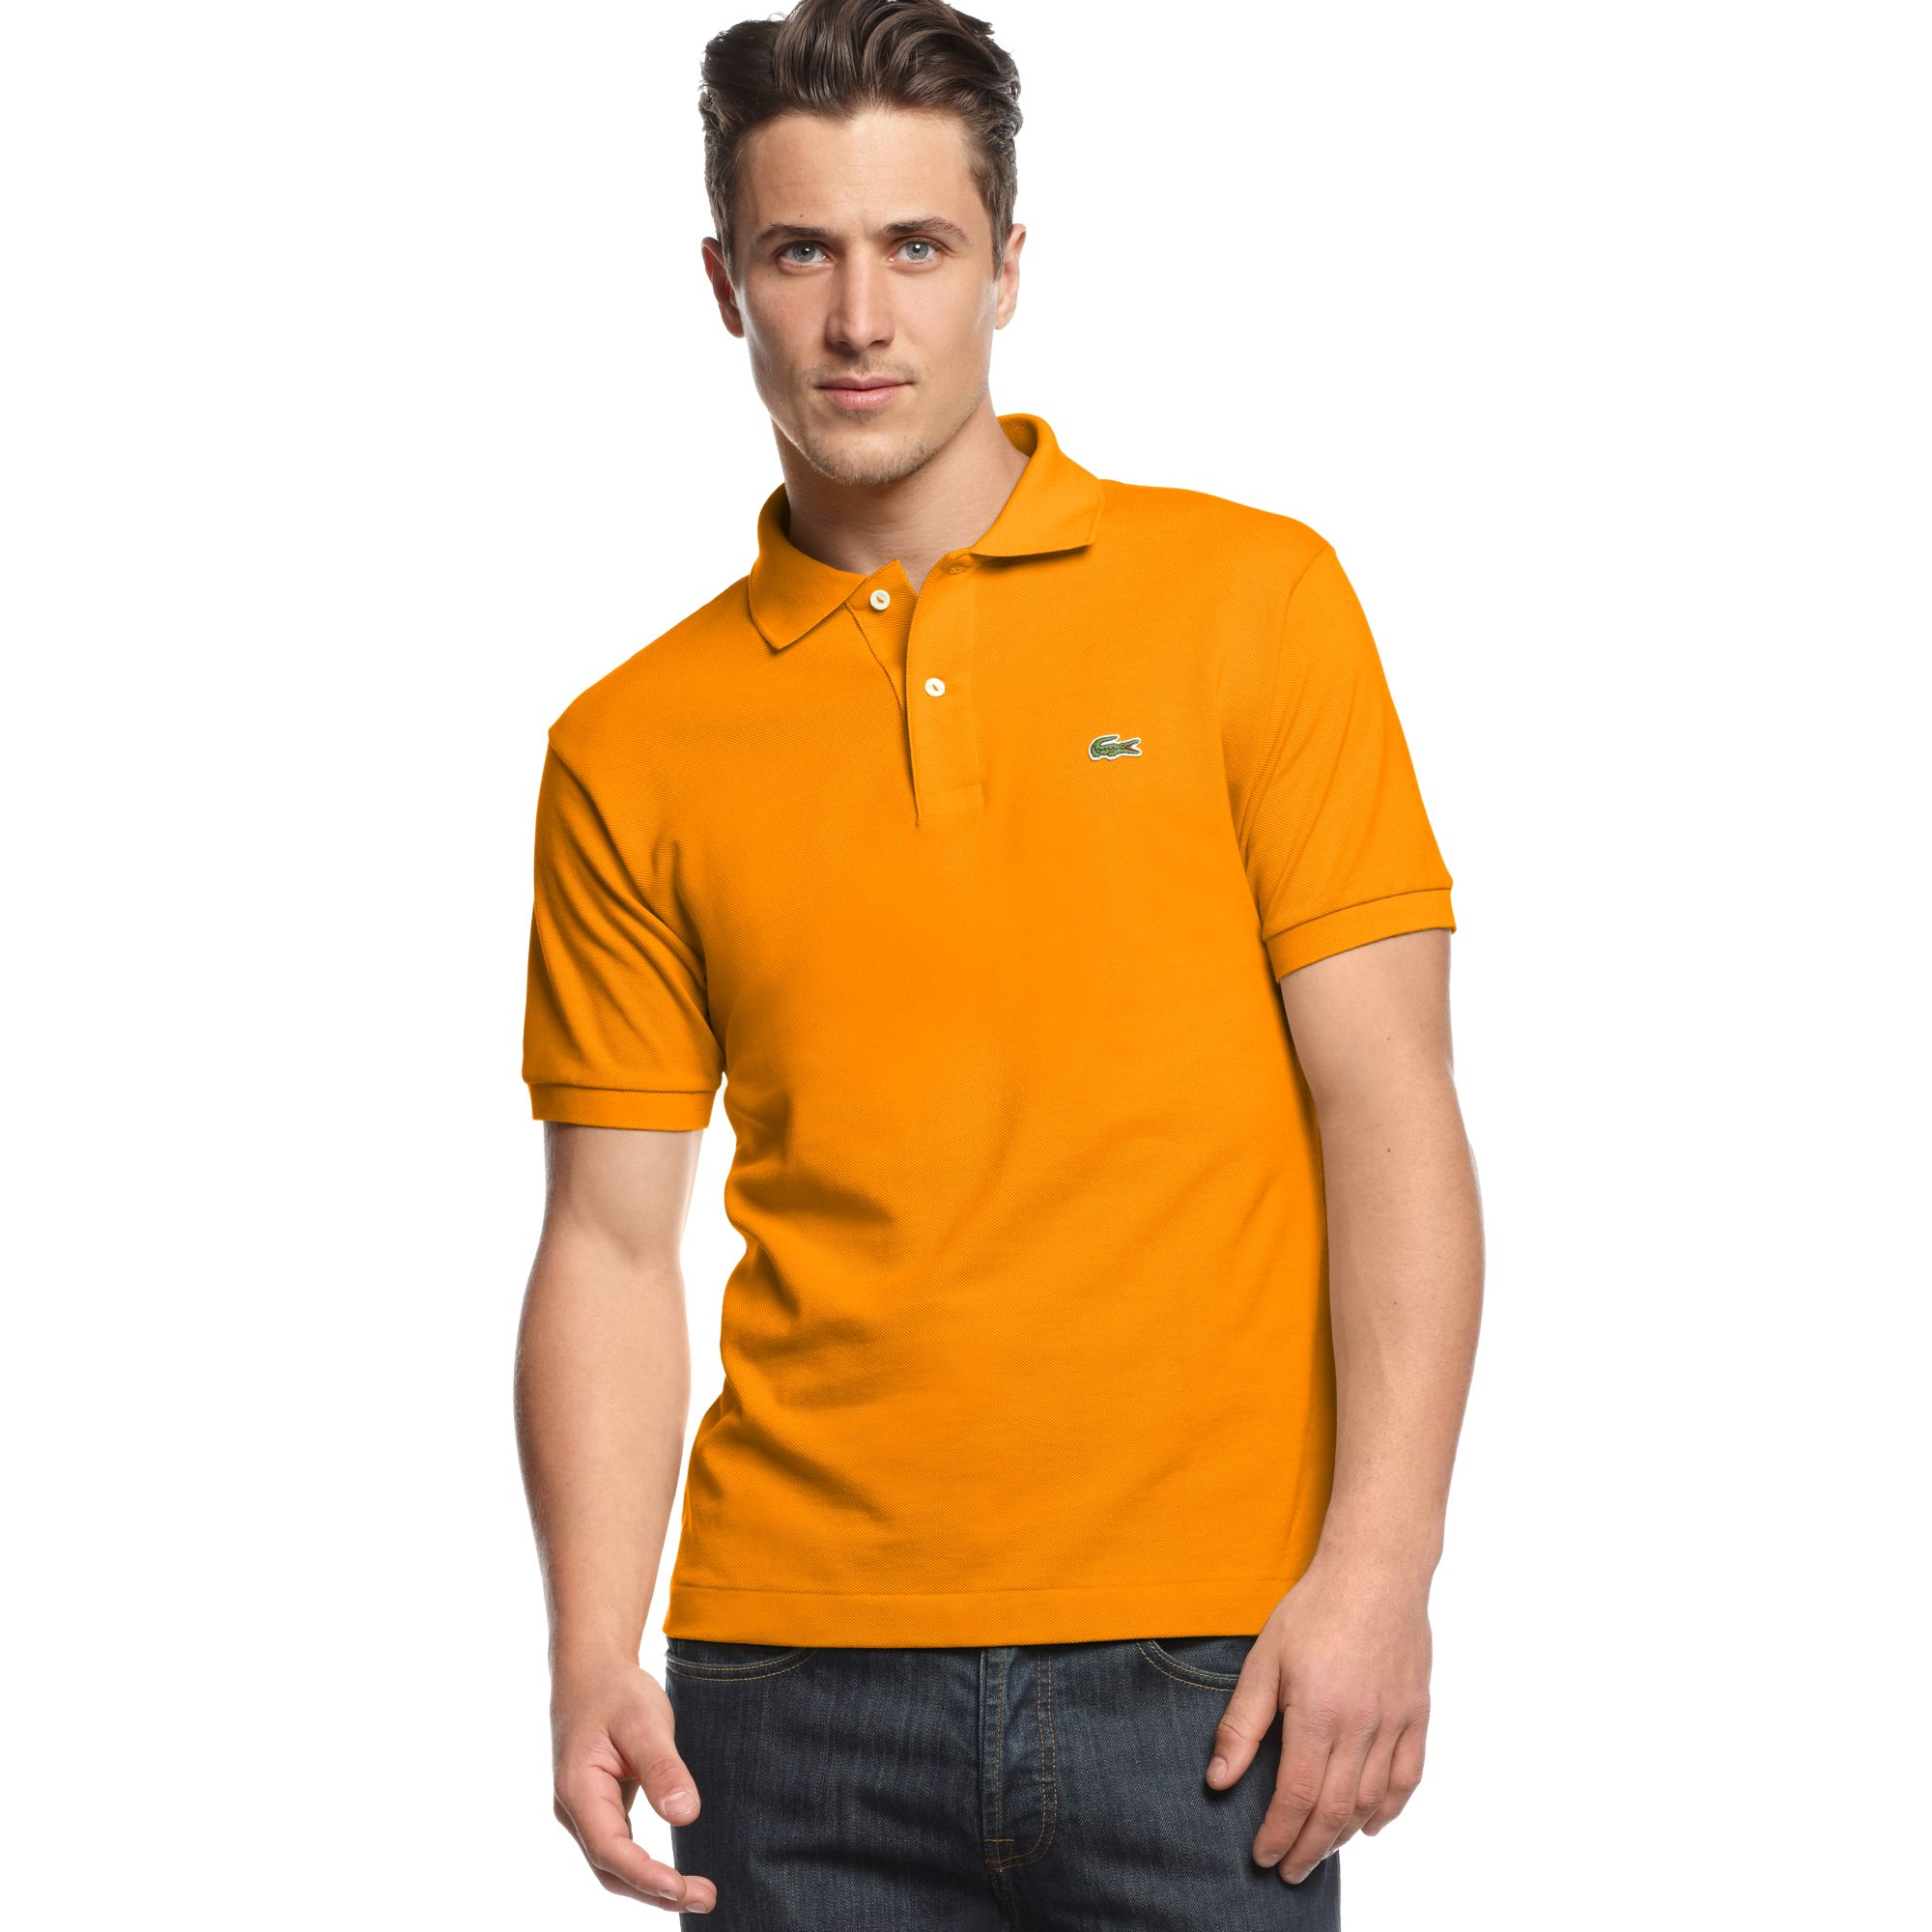 Lacoste Classic Pique Polo Shirt In Orange For Men Orange